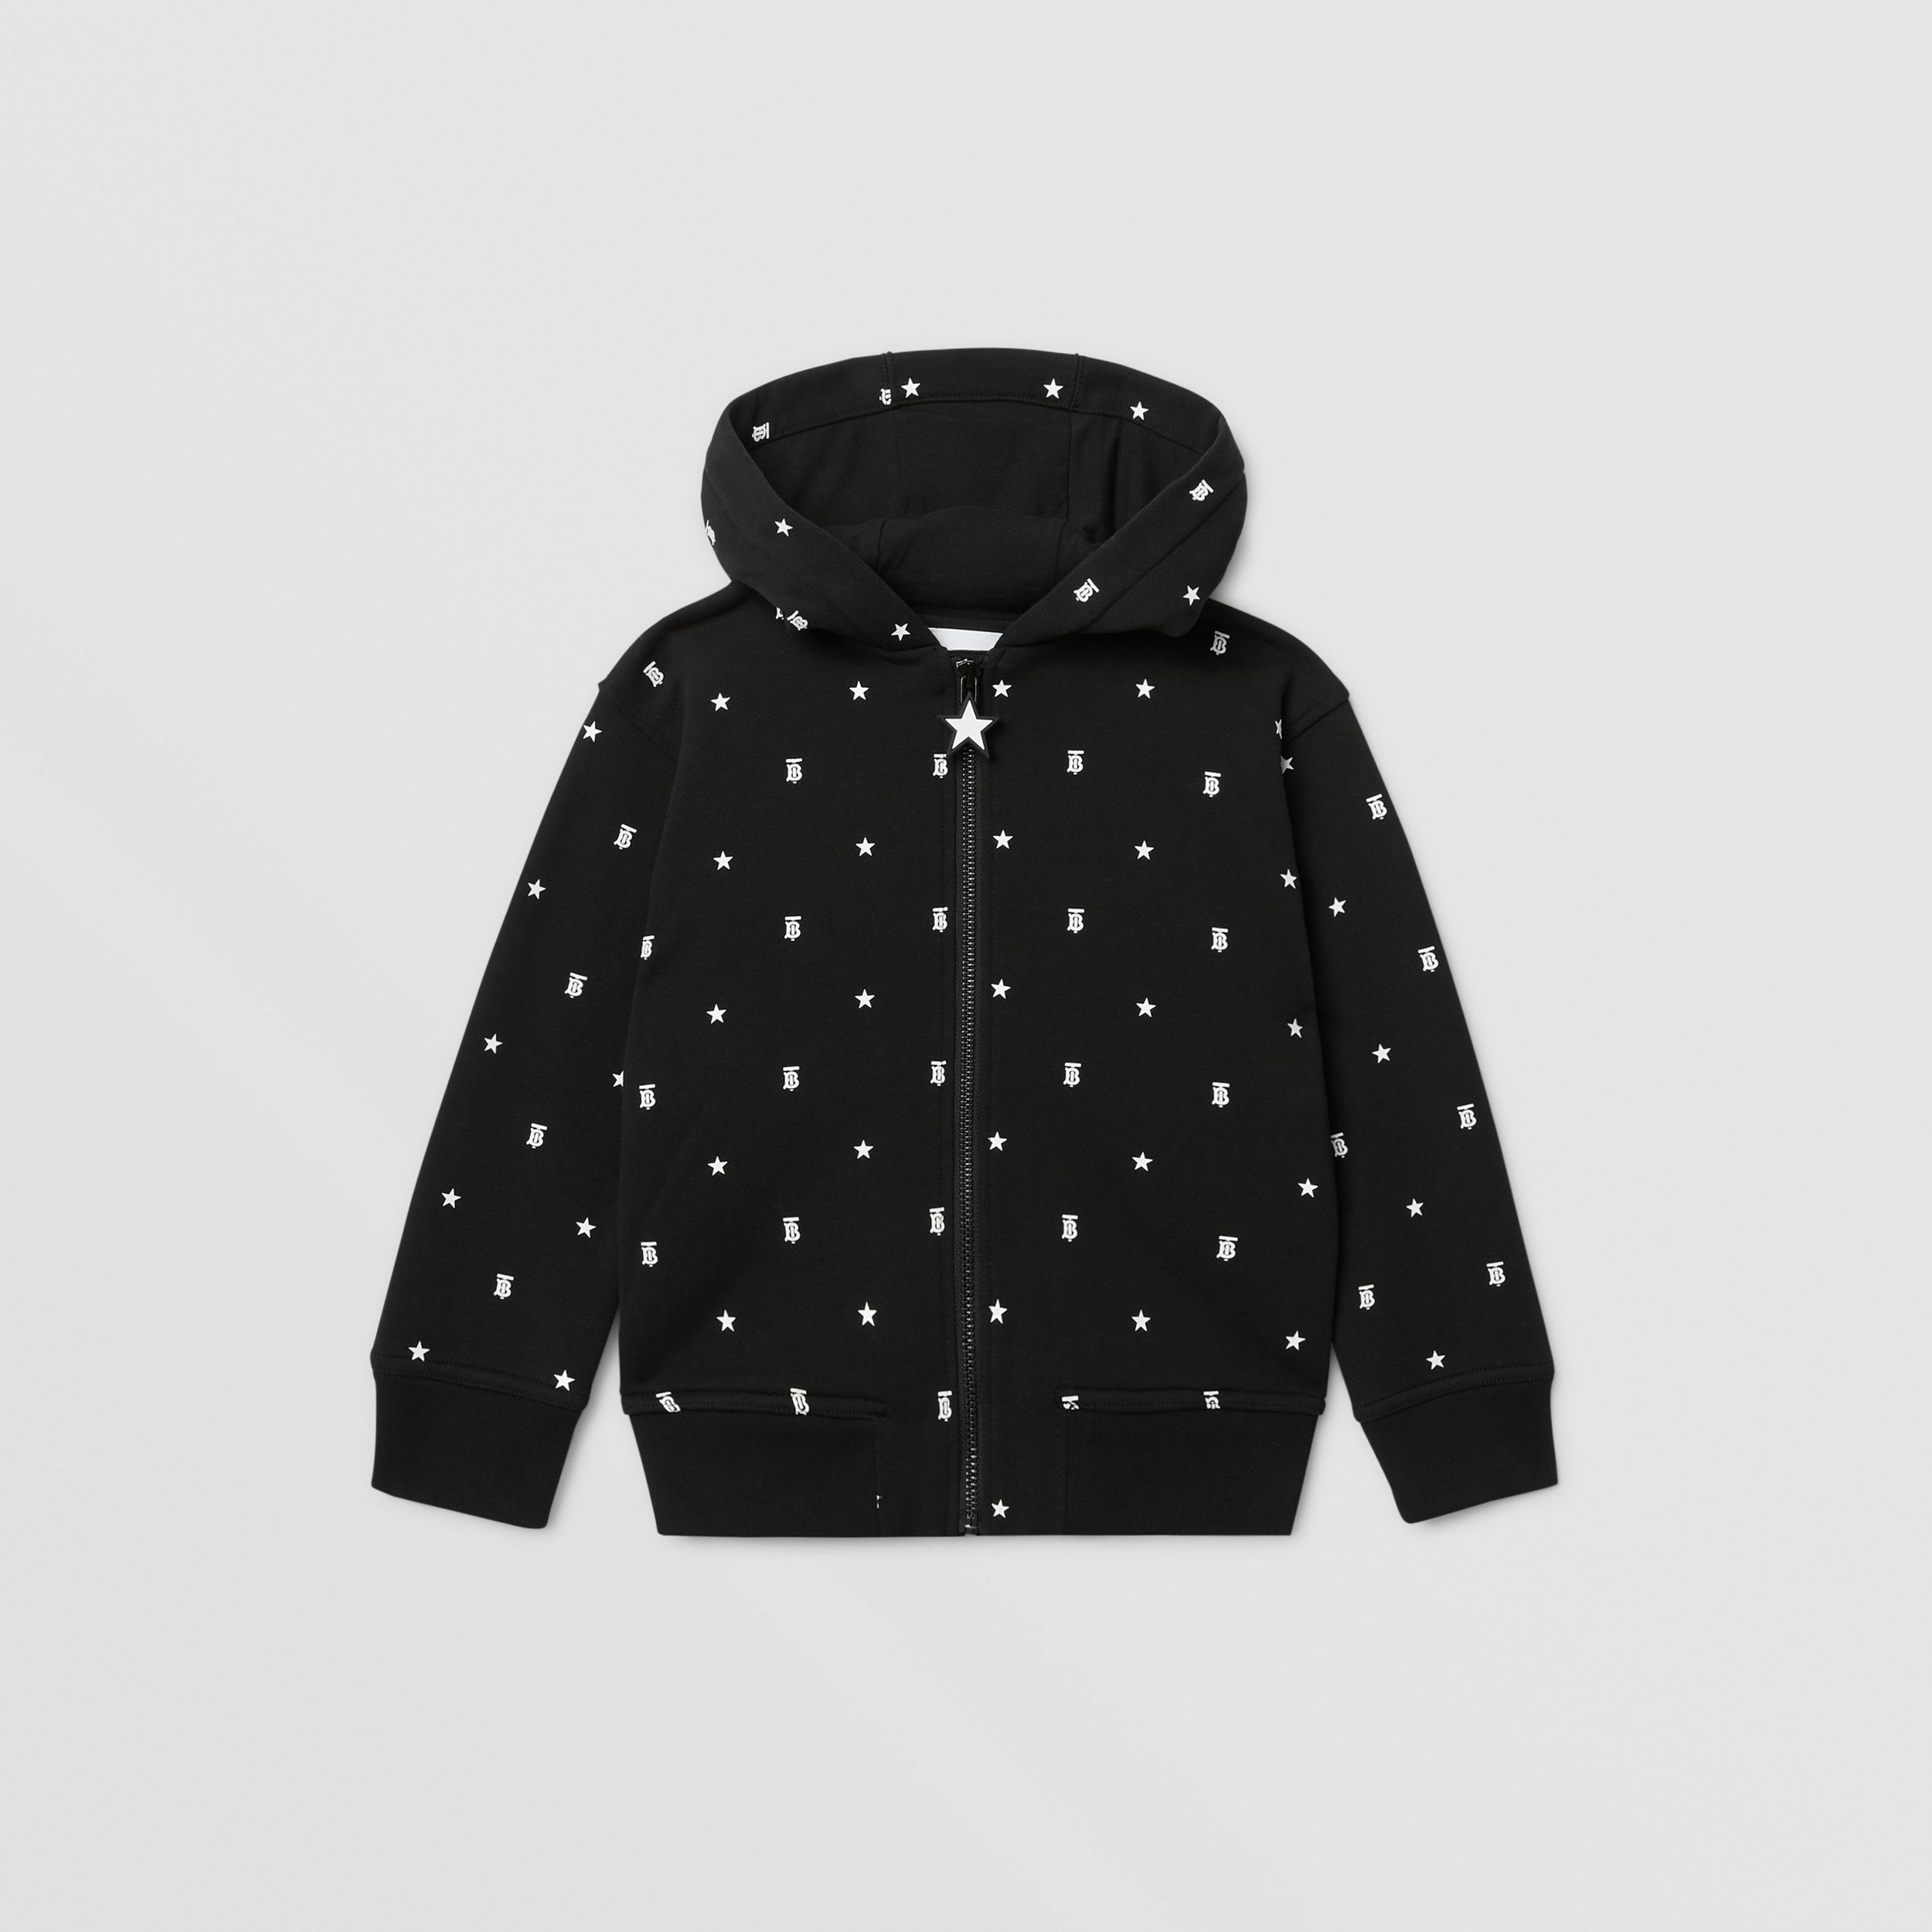 Star and Monogram Motif Cotton Hooded Top in Black | Burberry - 1